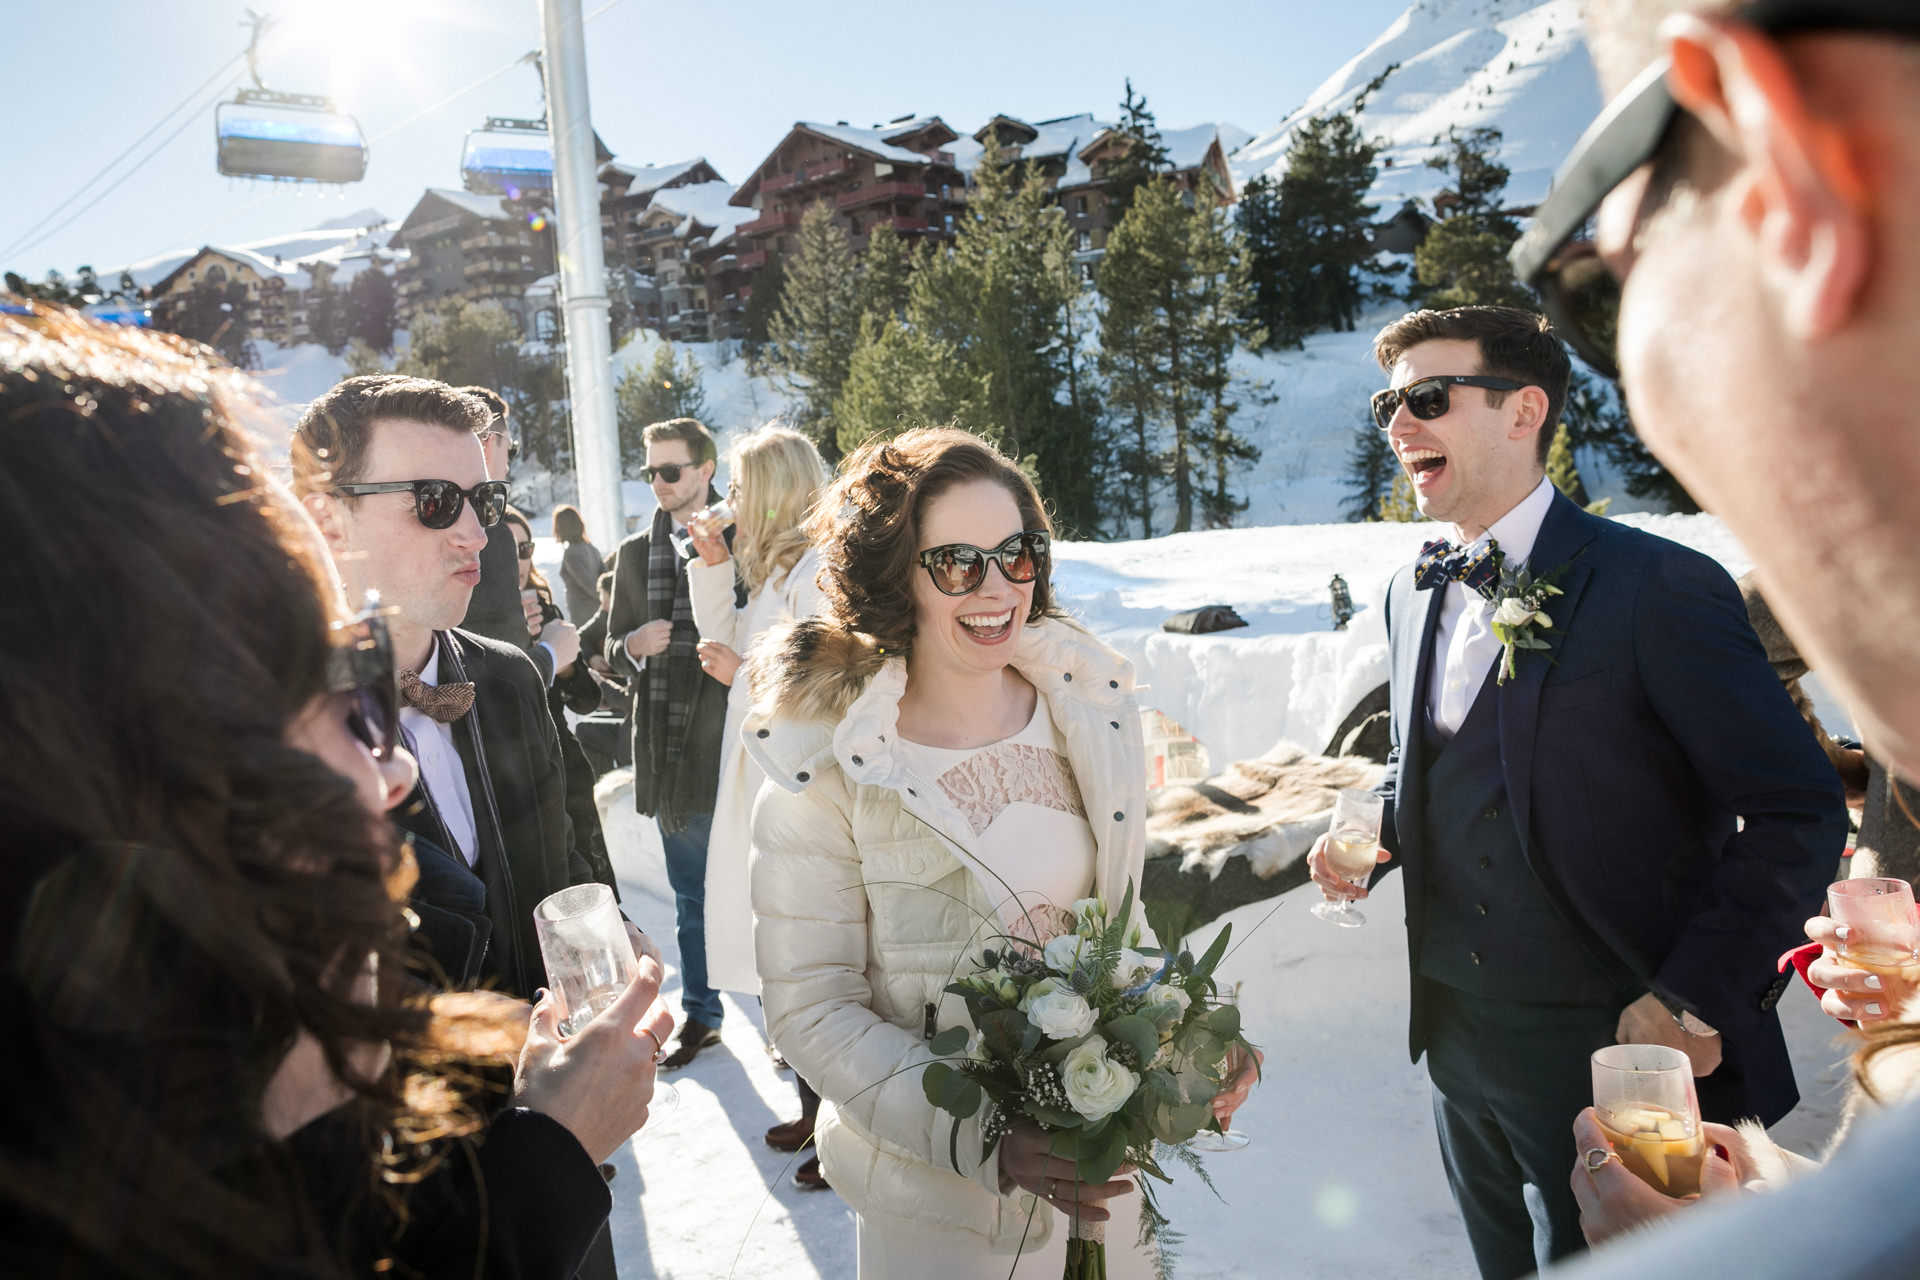 France Mountain Winter Elopement in the Snow | a coordinating ski coat to her wedding day ensemble